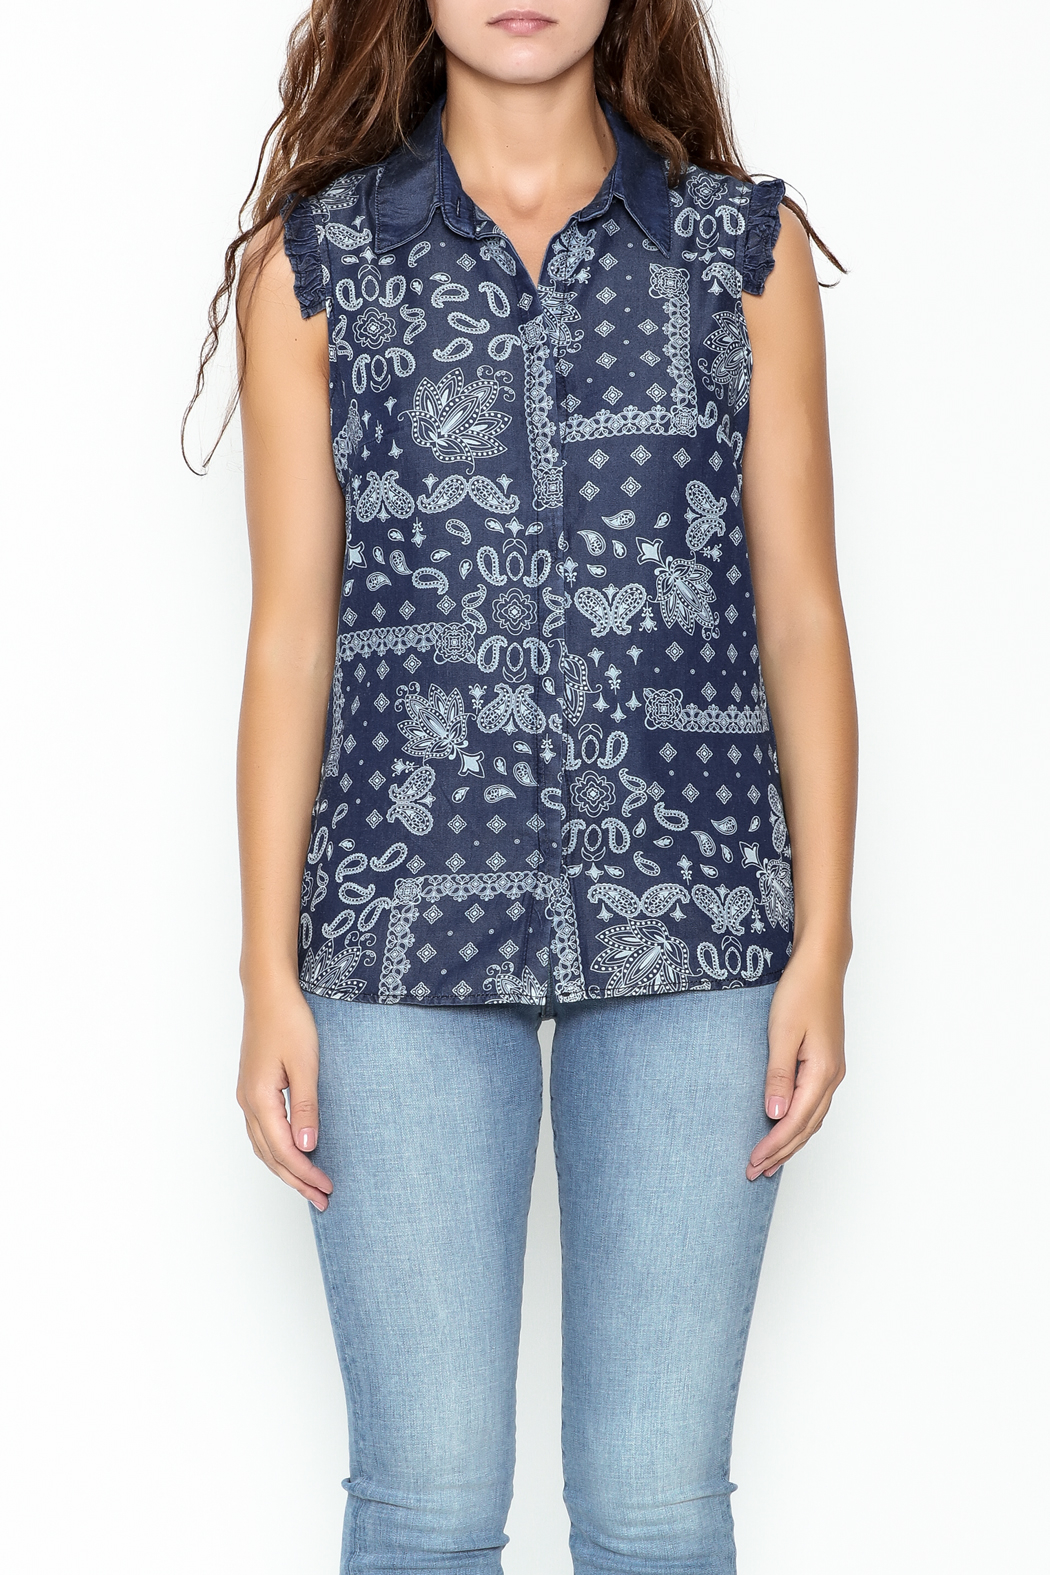 Marvy Fashion Printed Jean Top - Front Full Image